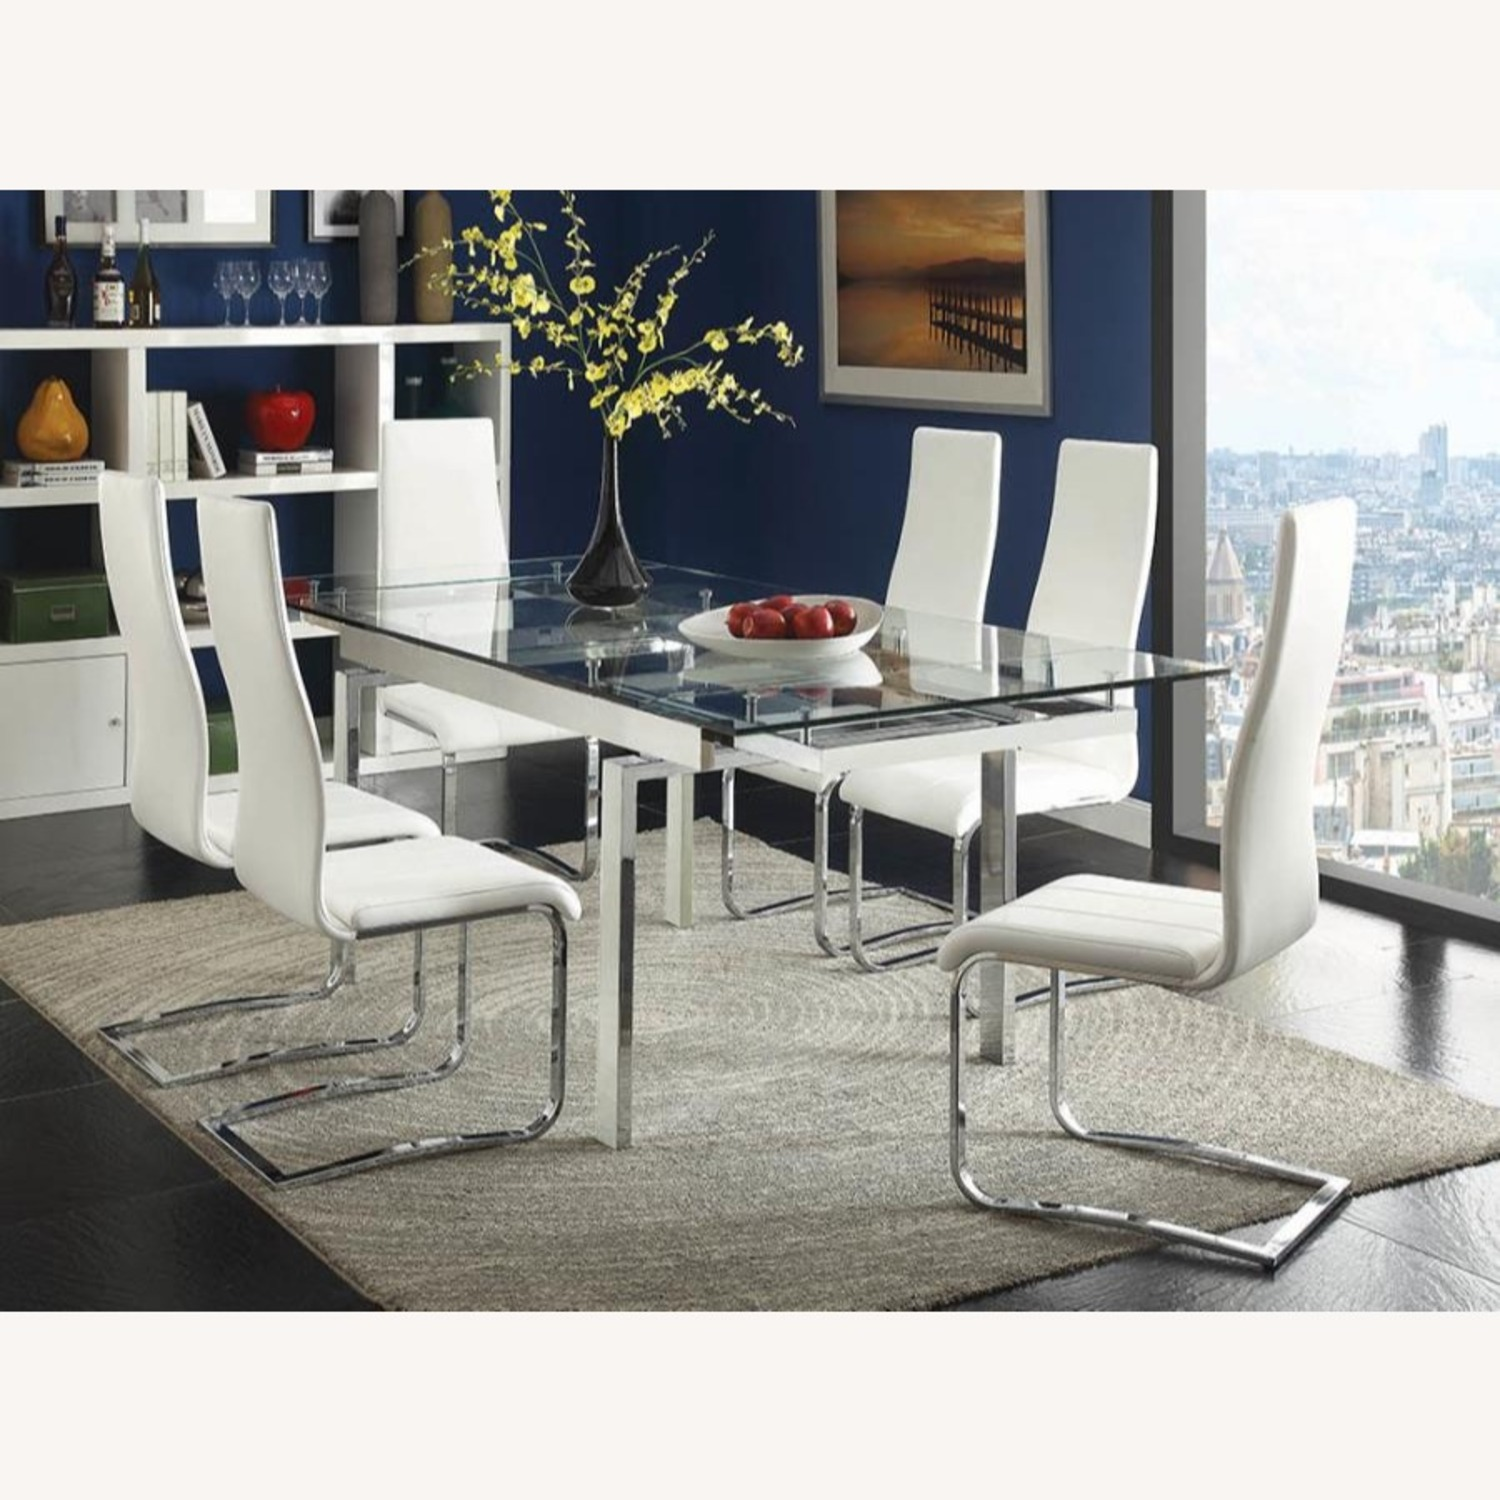 Iconic Breuer Style Side Chair In White Leather - image-3